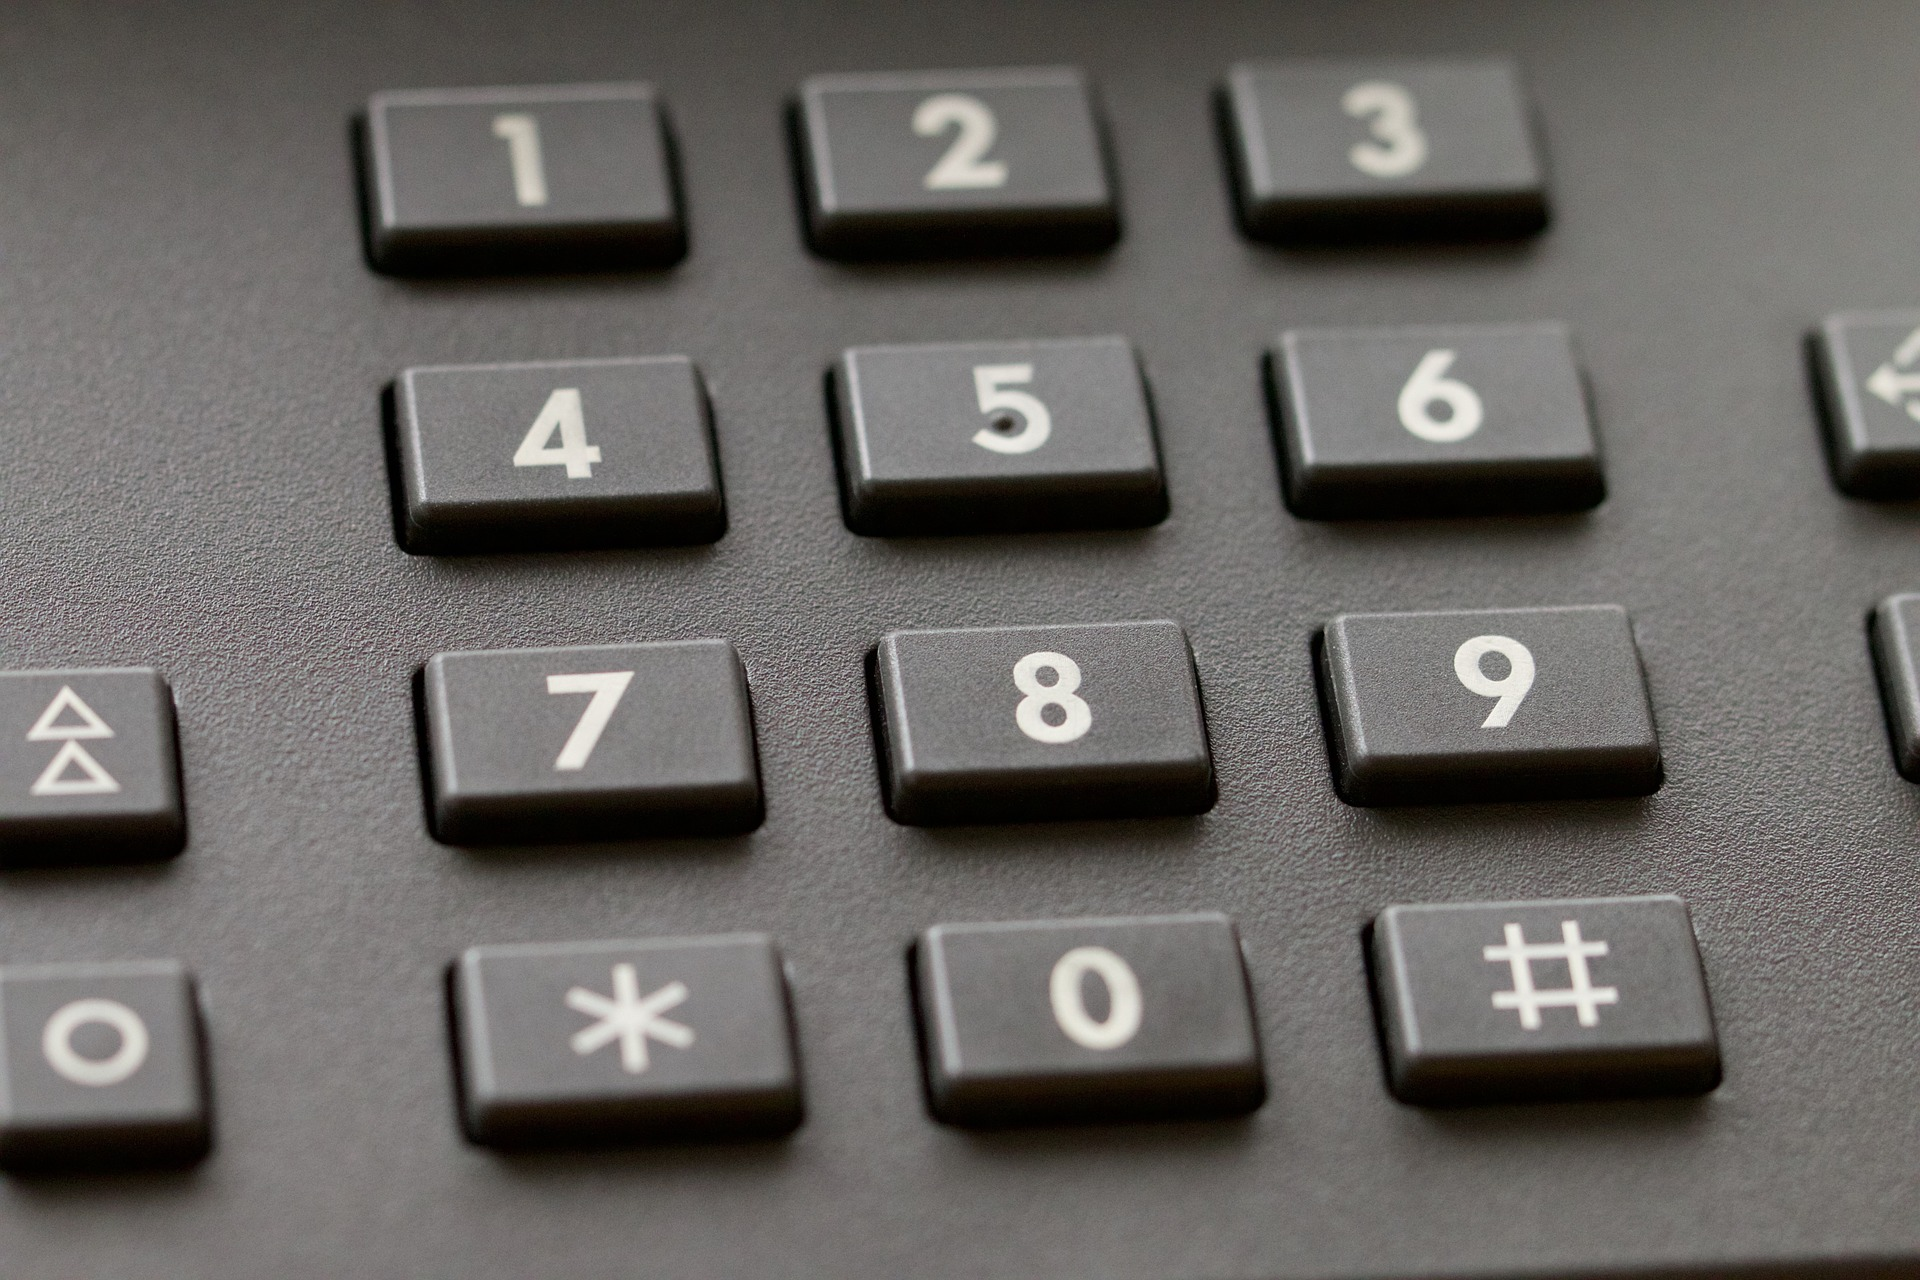 Numbers on the phone